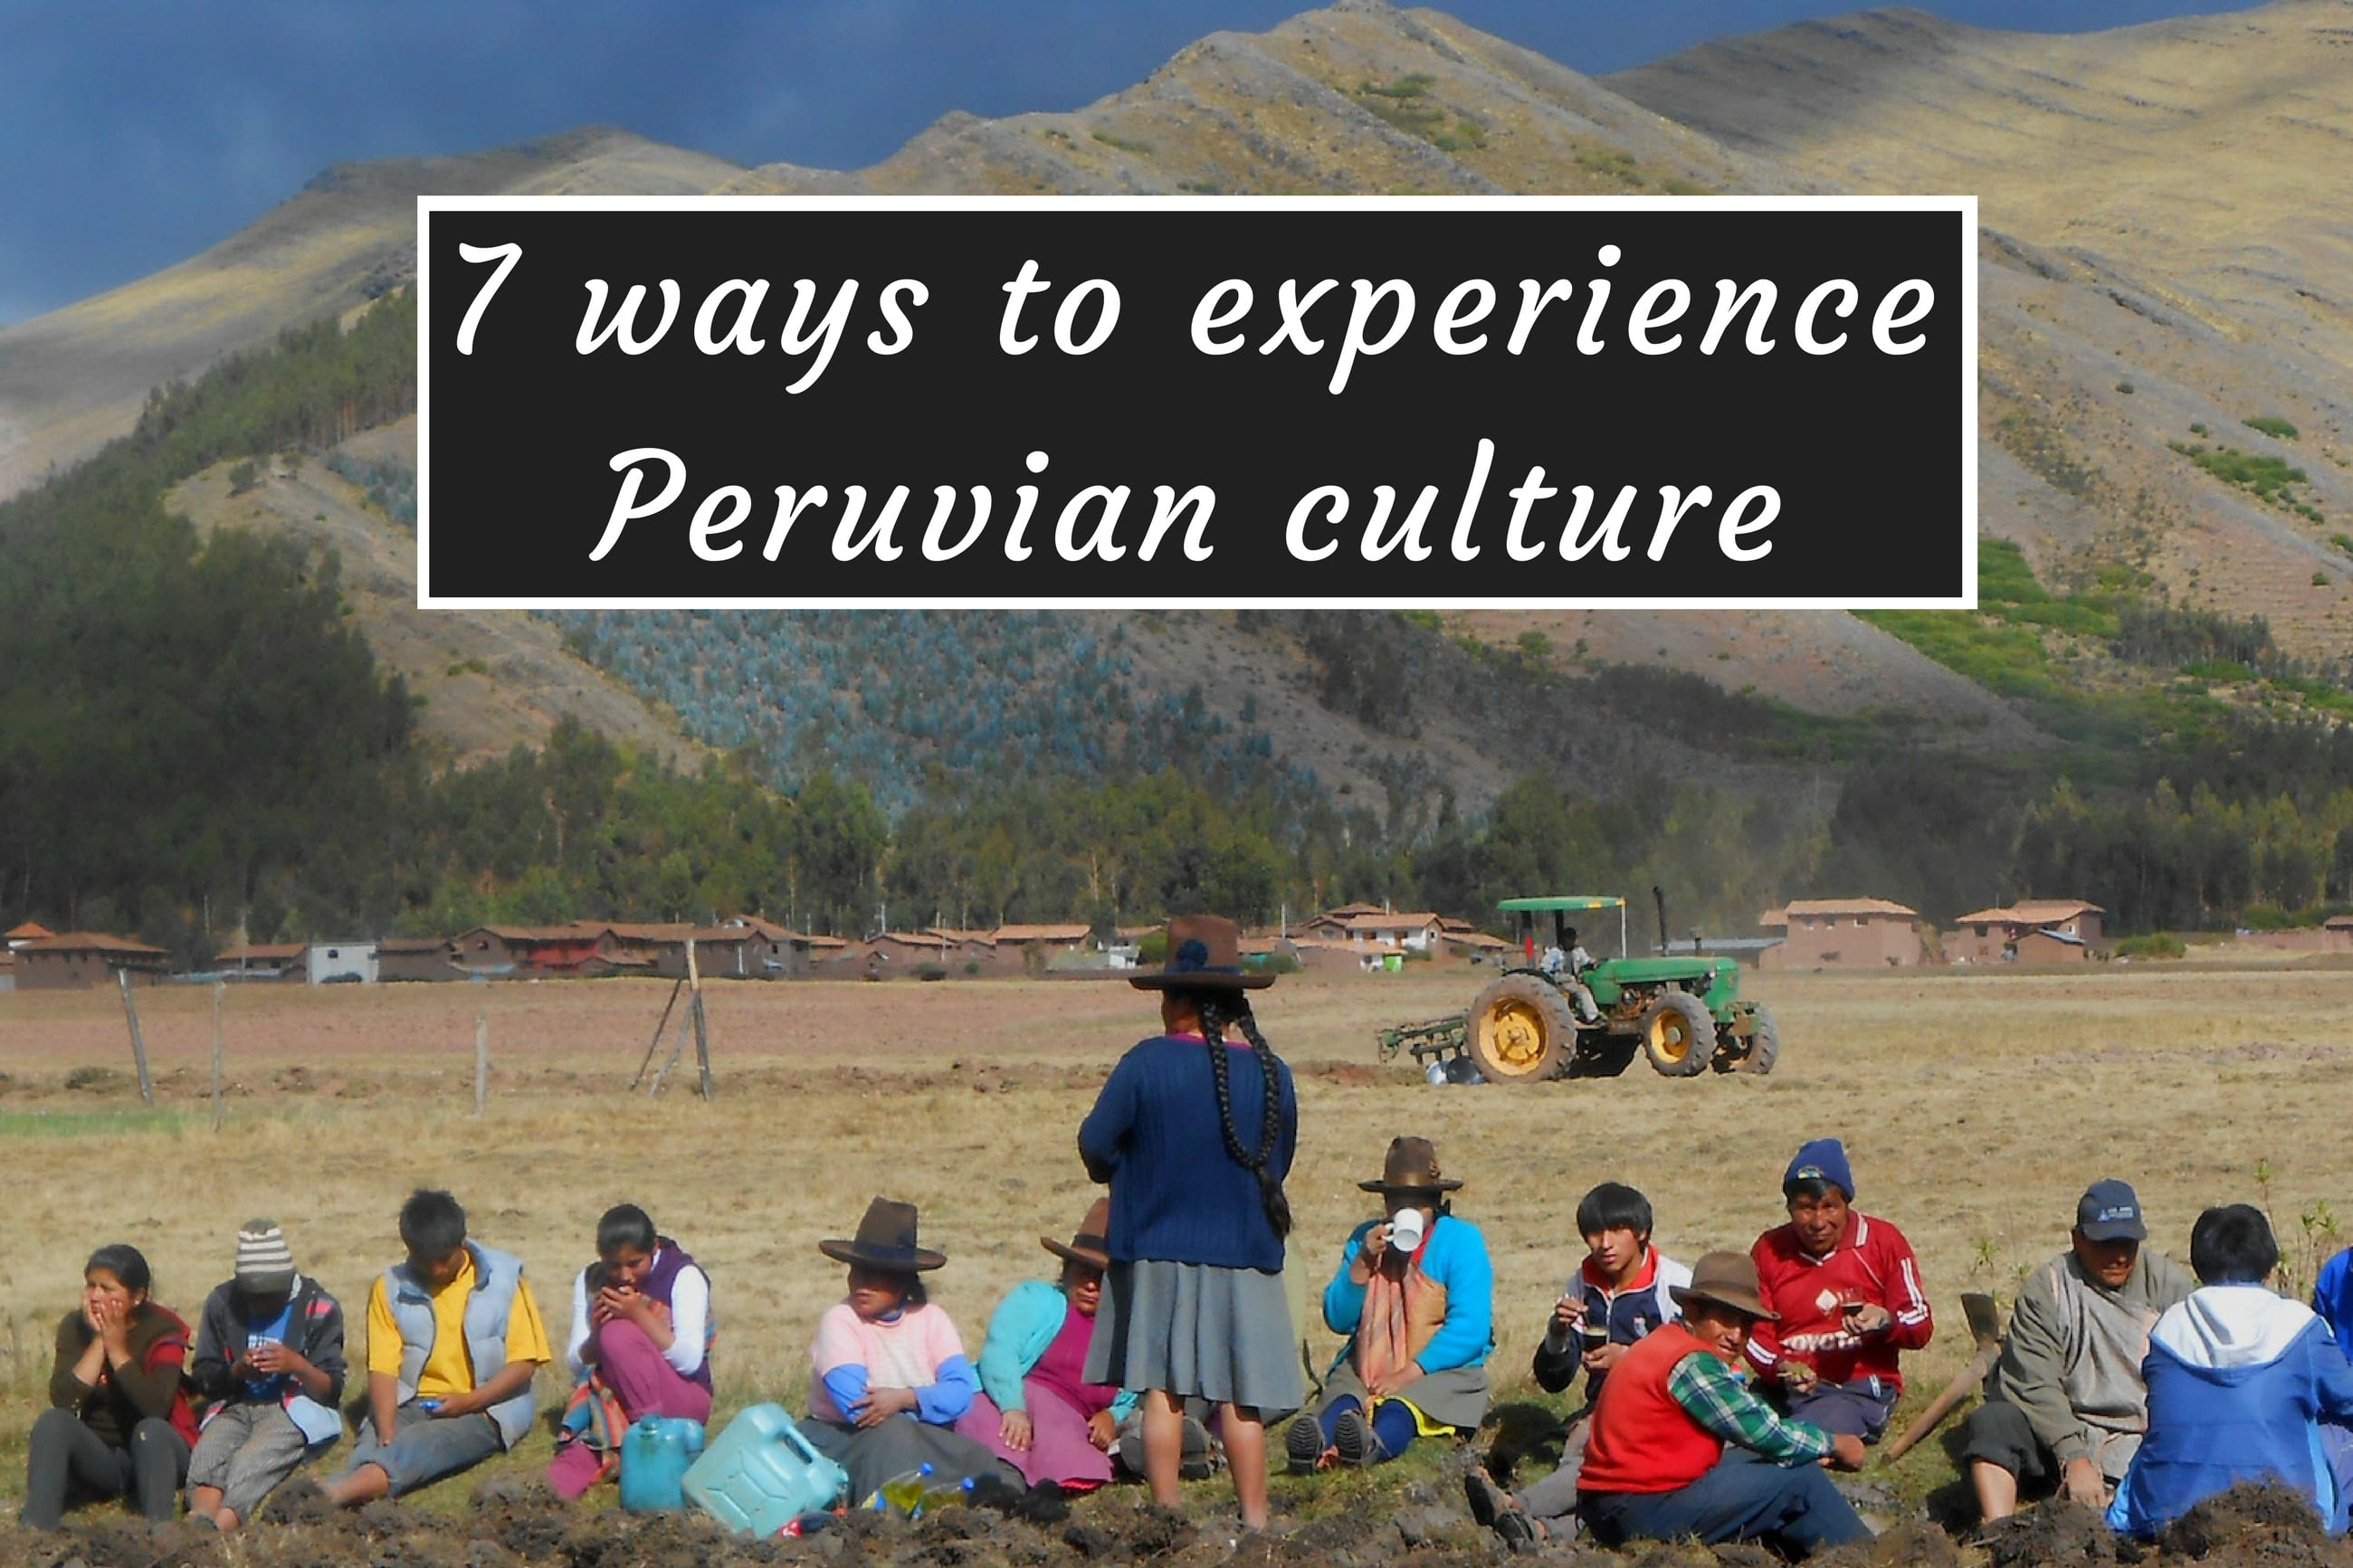 7 Ways to Experience the Peruvian Culture